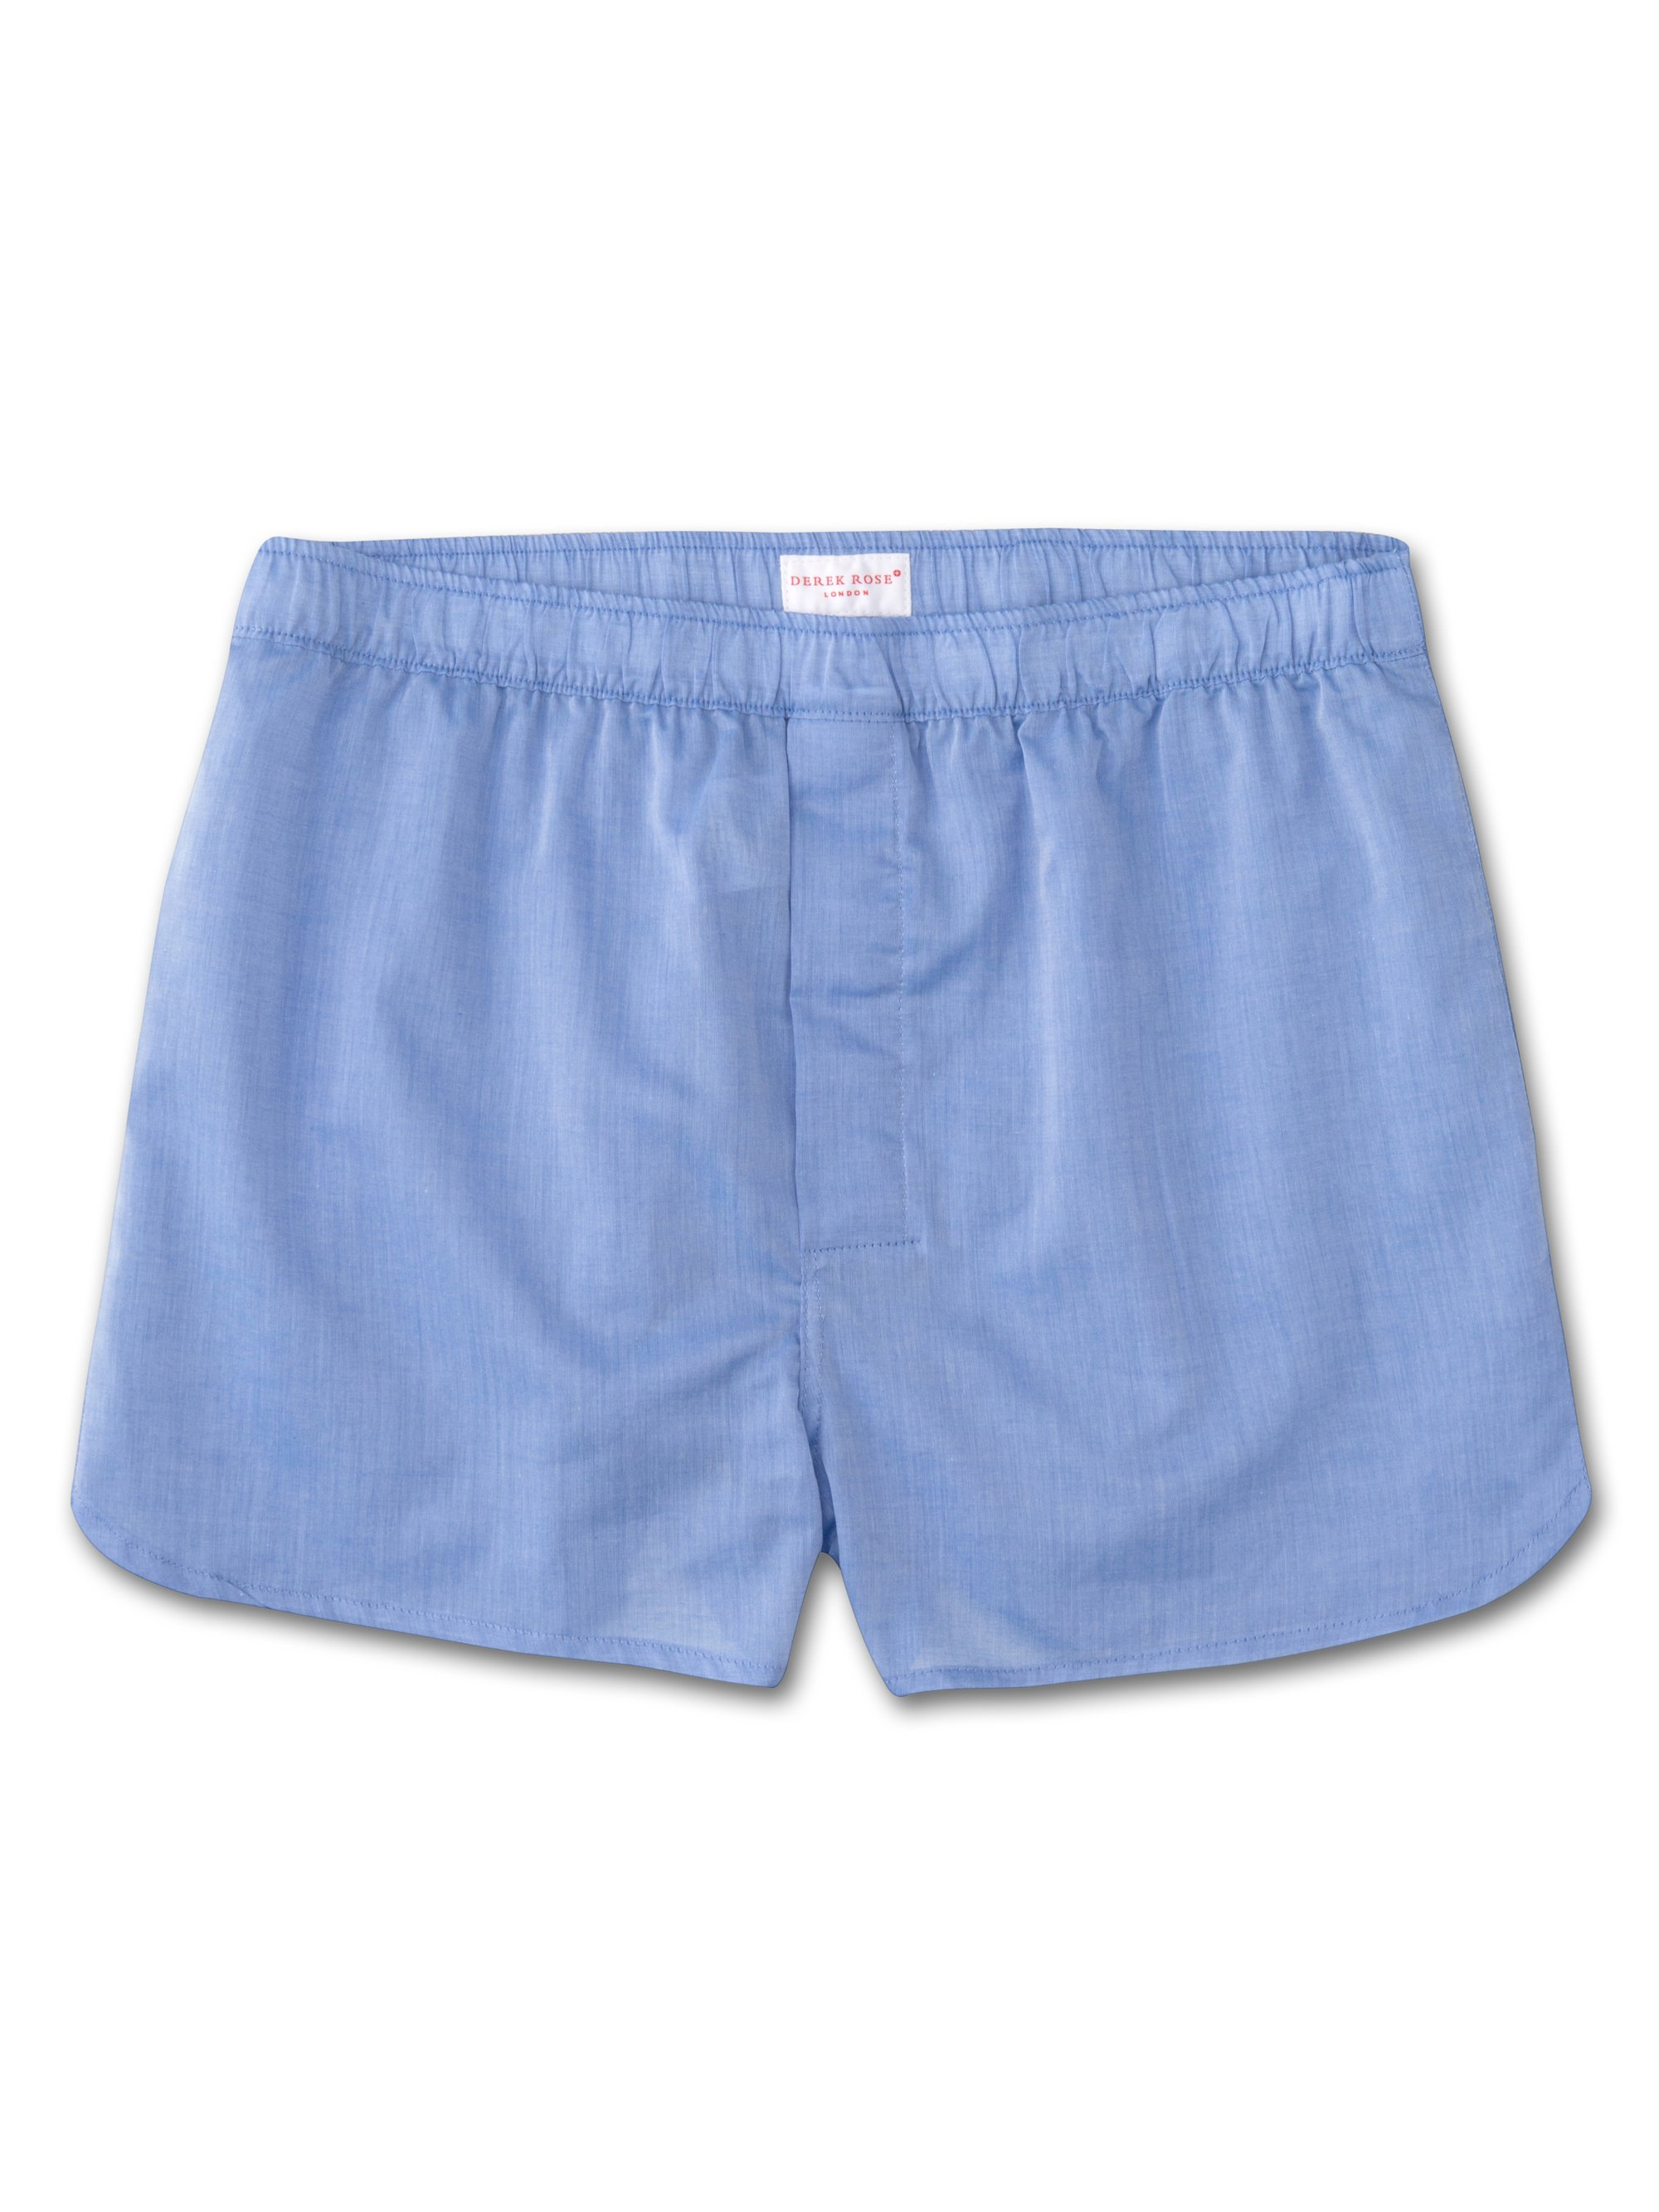 Men's Modern Fit Boxer Shorts Amalfi Cotton Batiste Blue